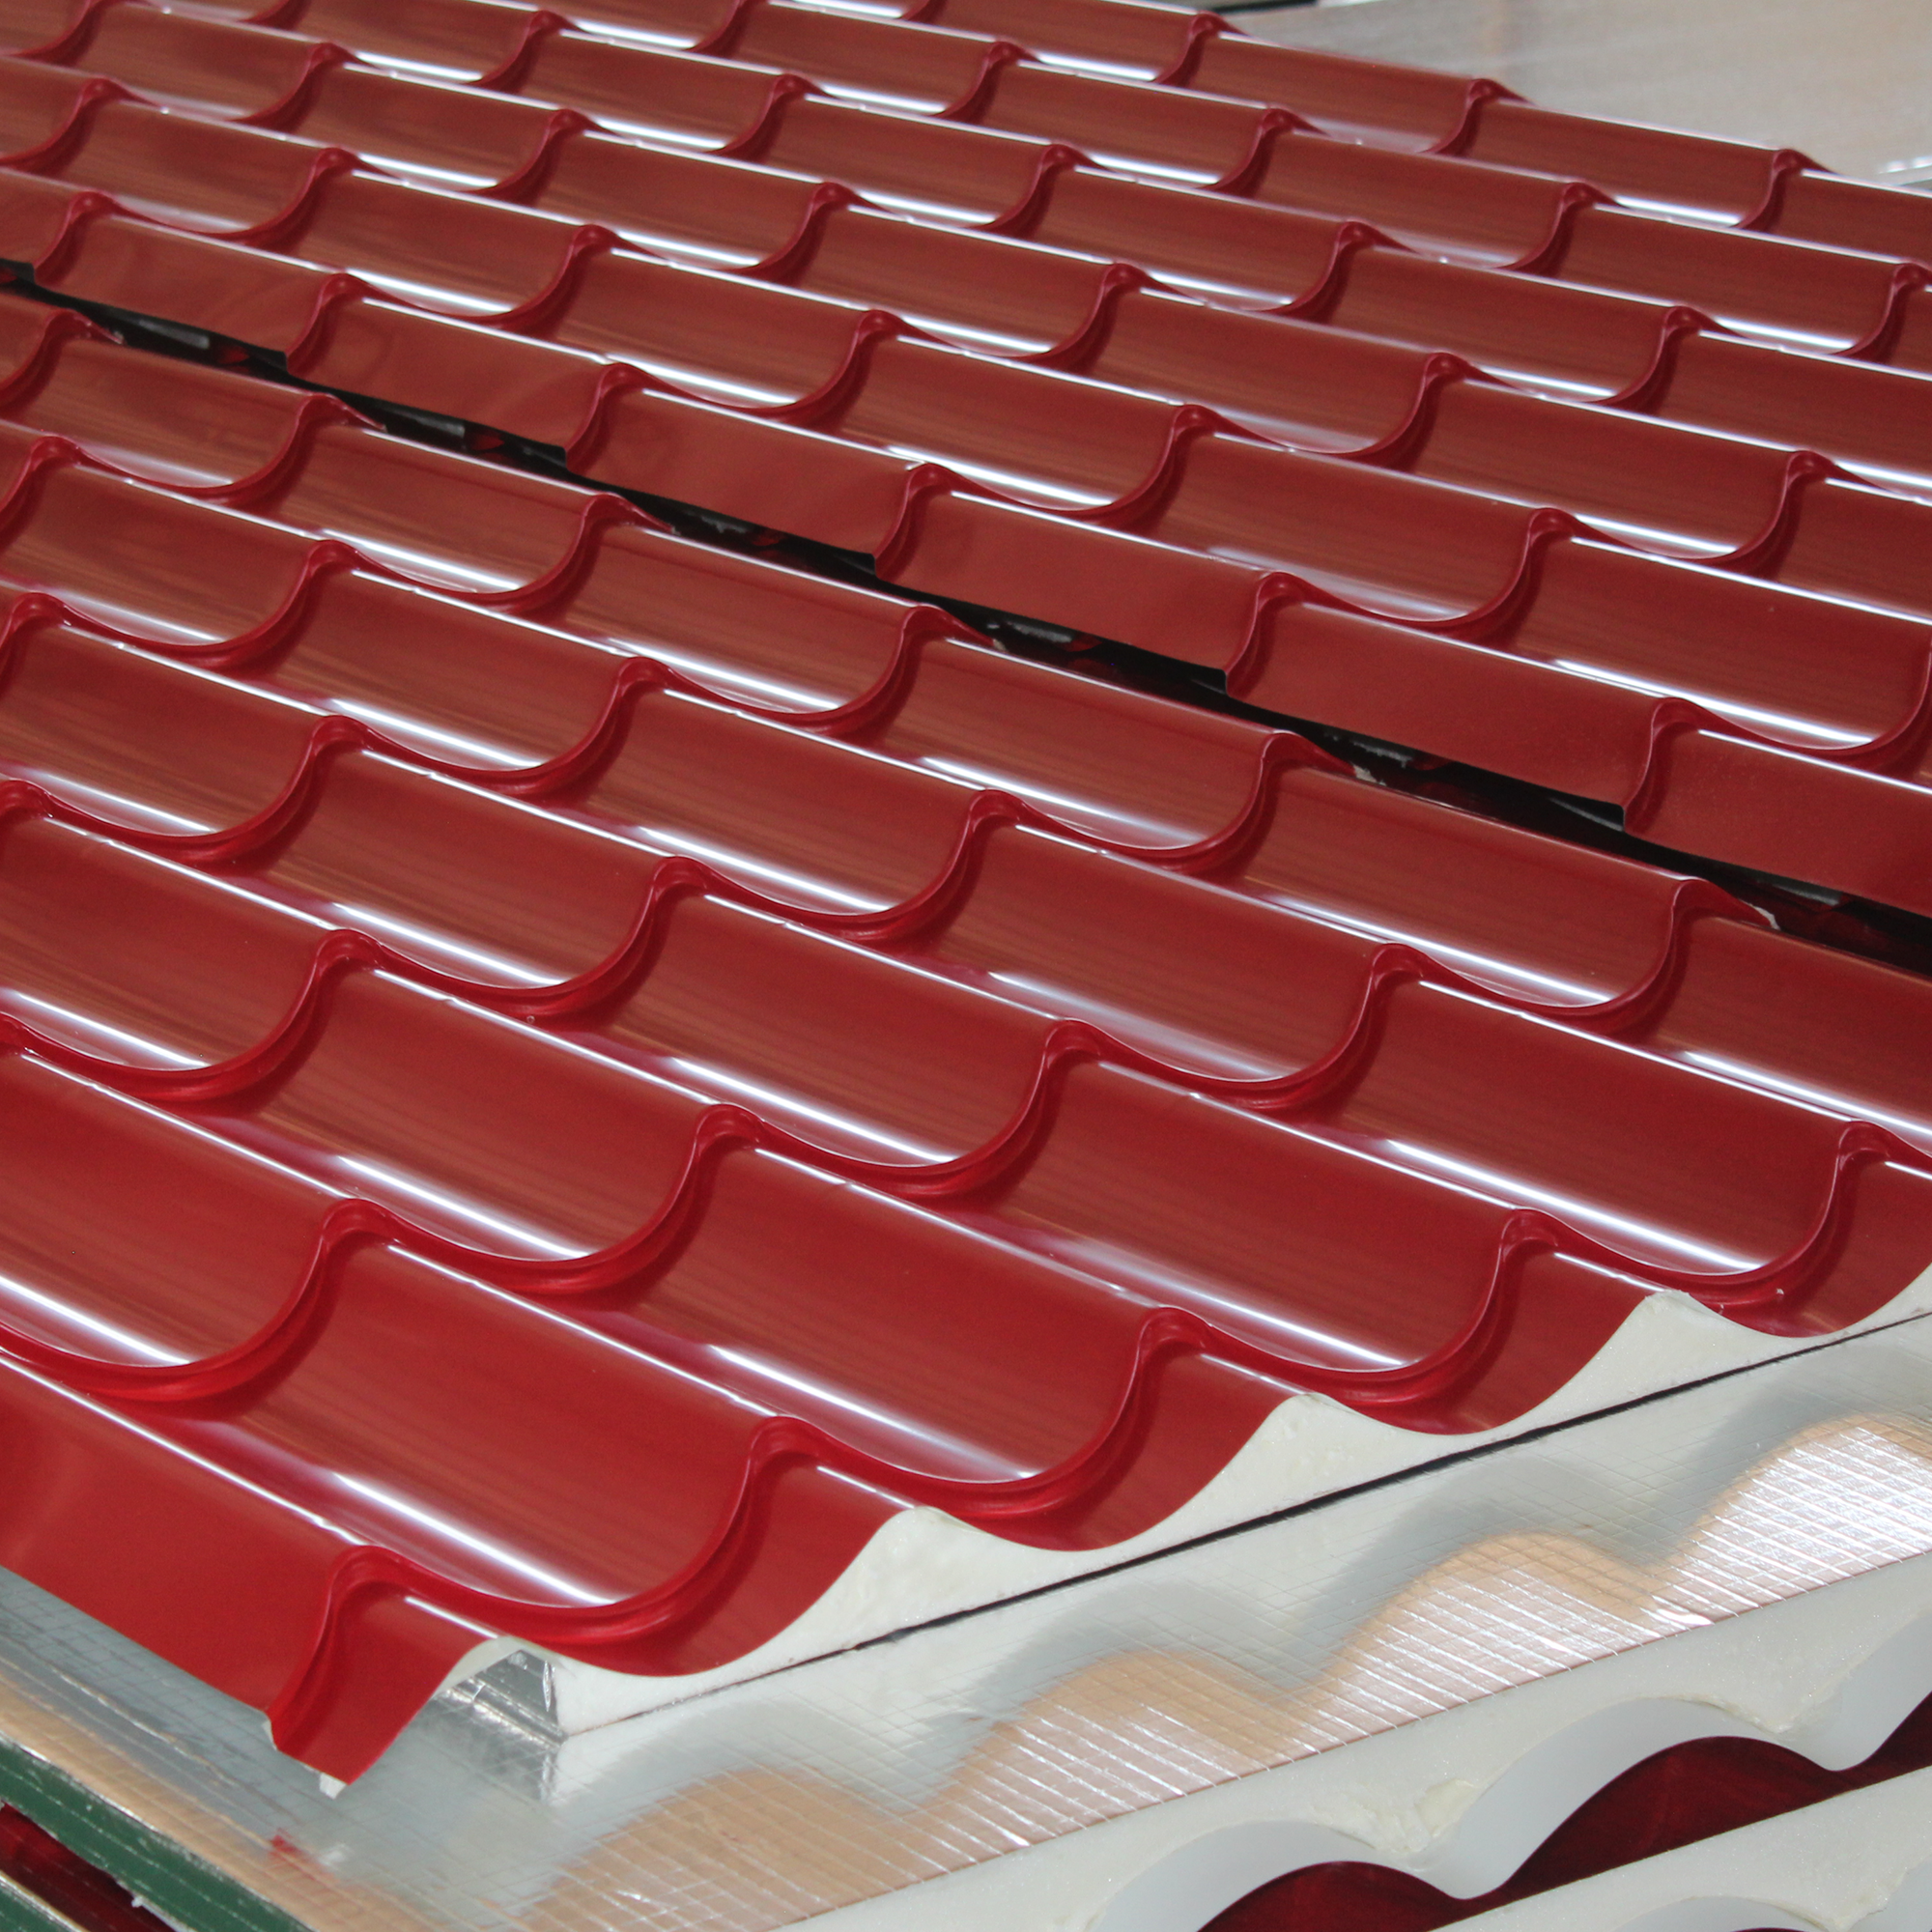 Qsif Roofing Tiles And Panels By Qatar Steel Factory In 2020 Clay Tiles Roofing Roof Panels